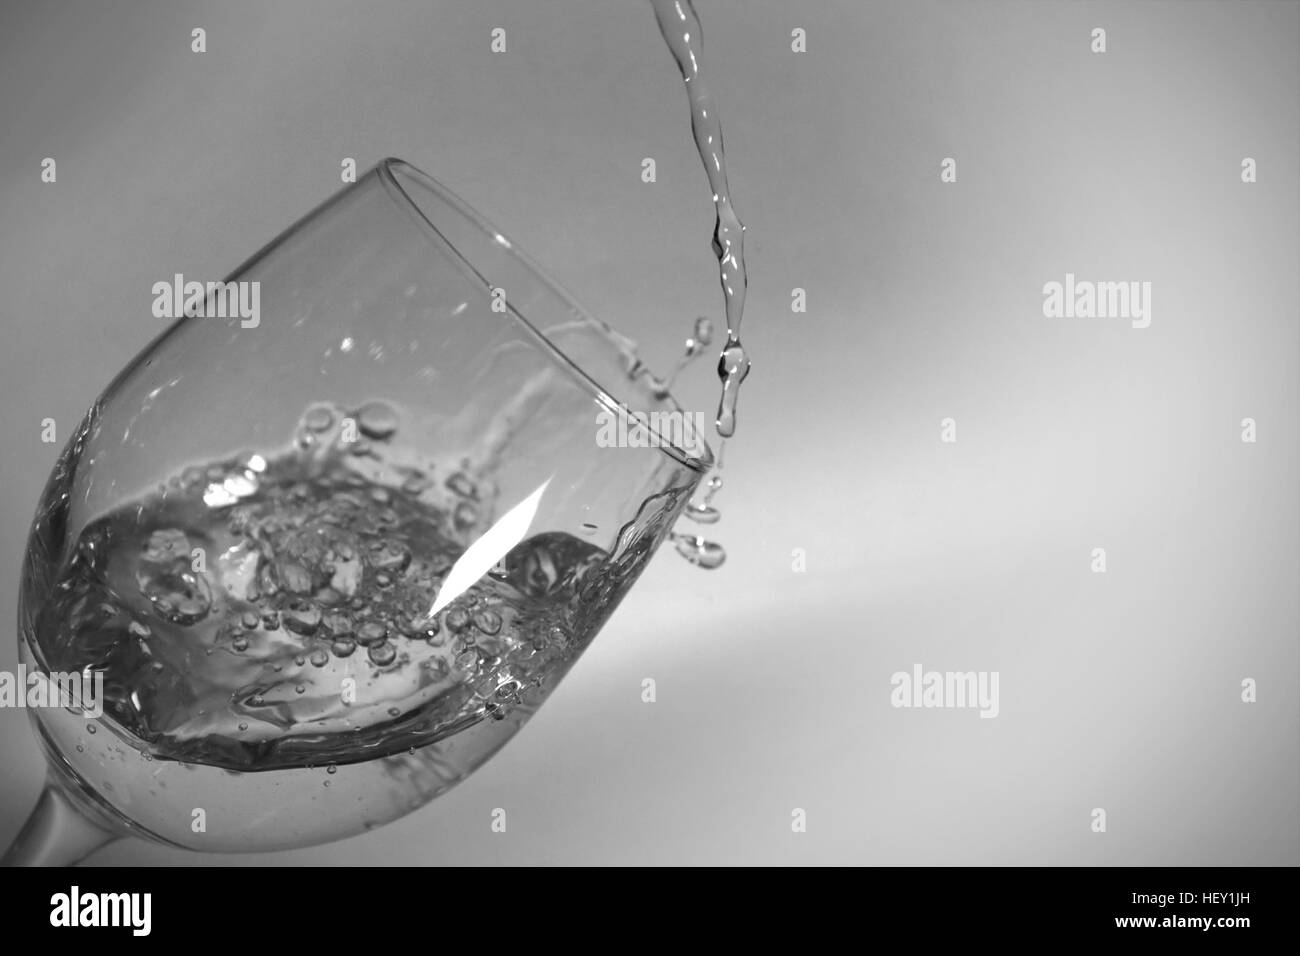 Fast shutter speed of water filling a tilted wine glass. - Stock Image